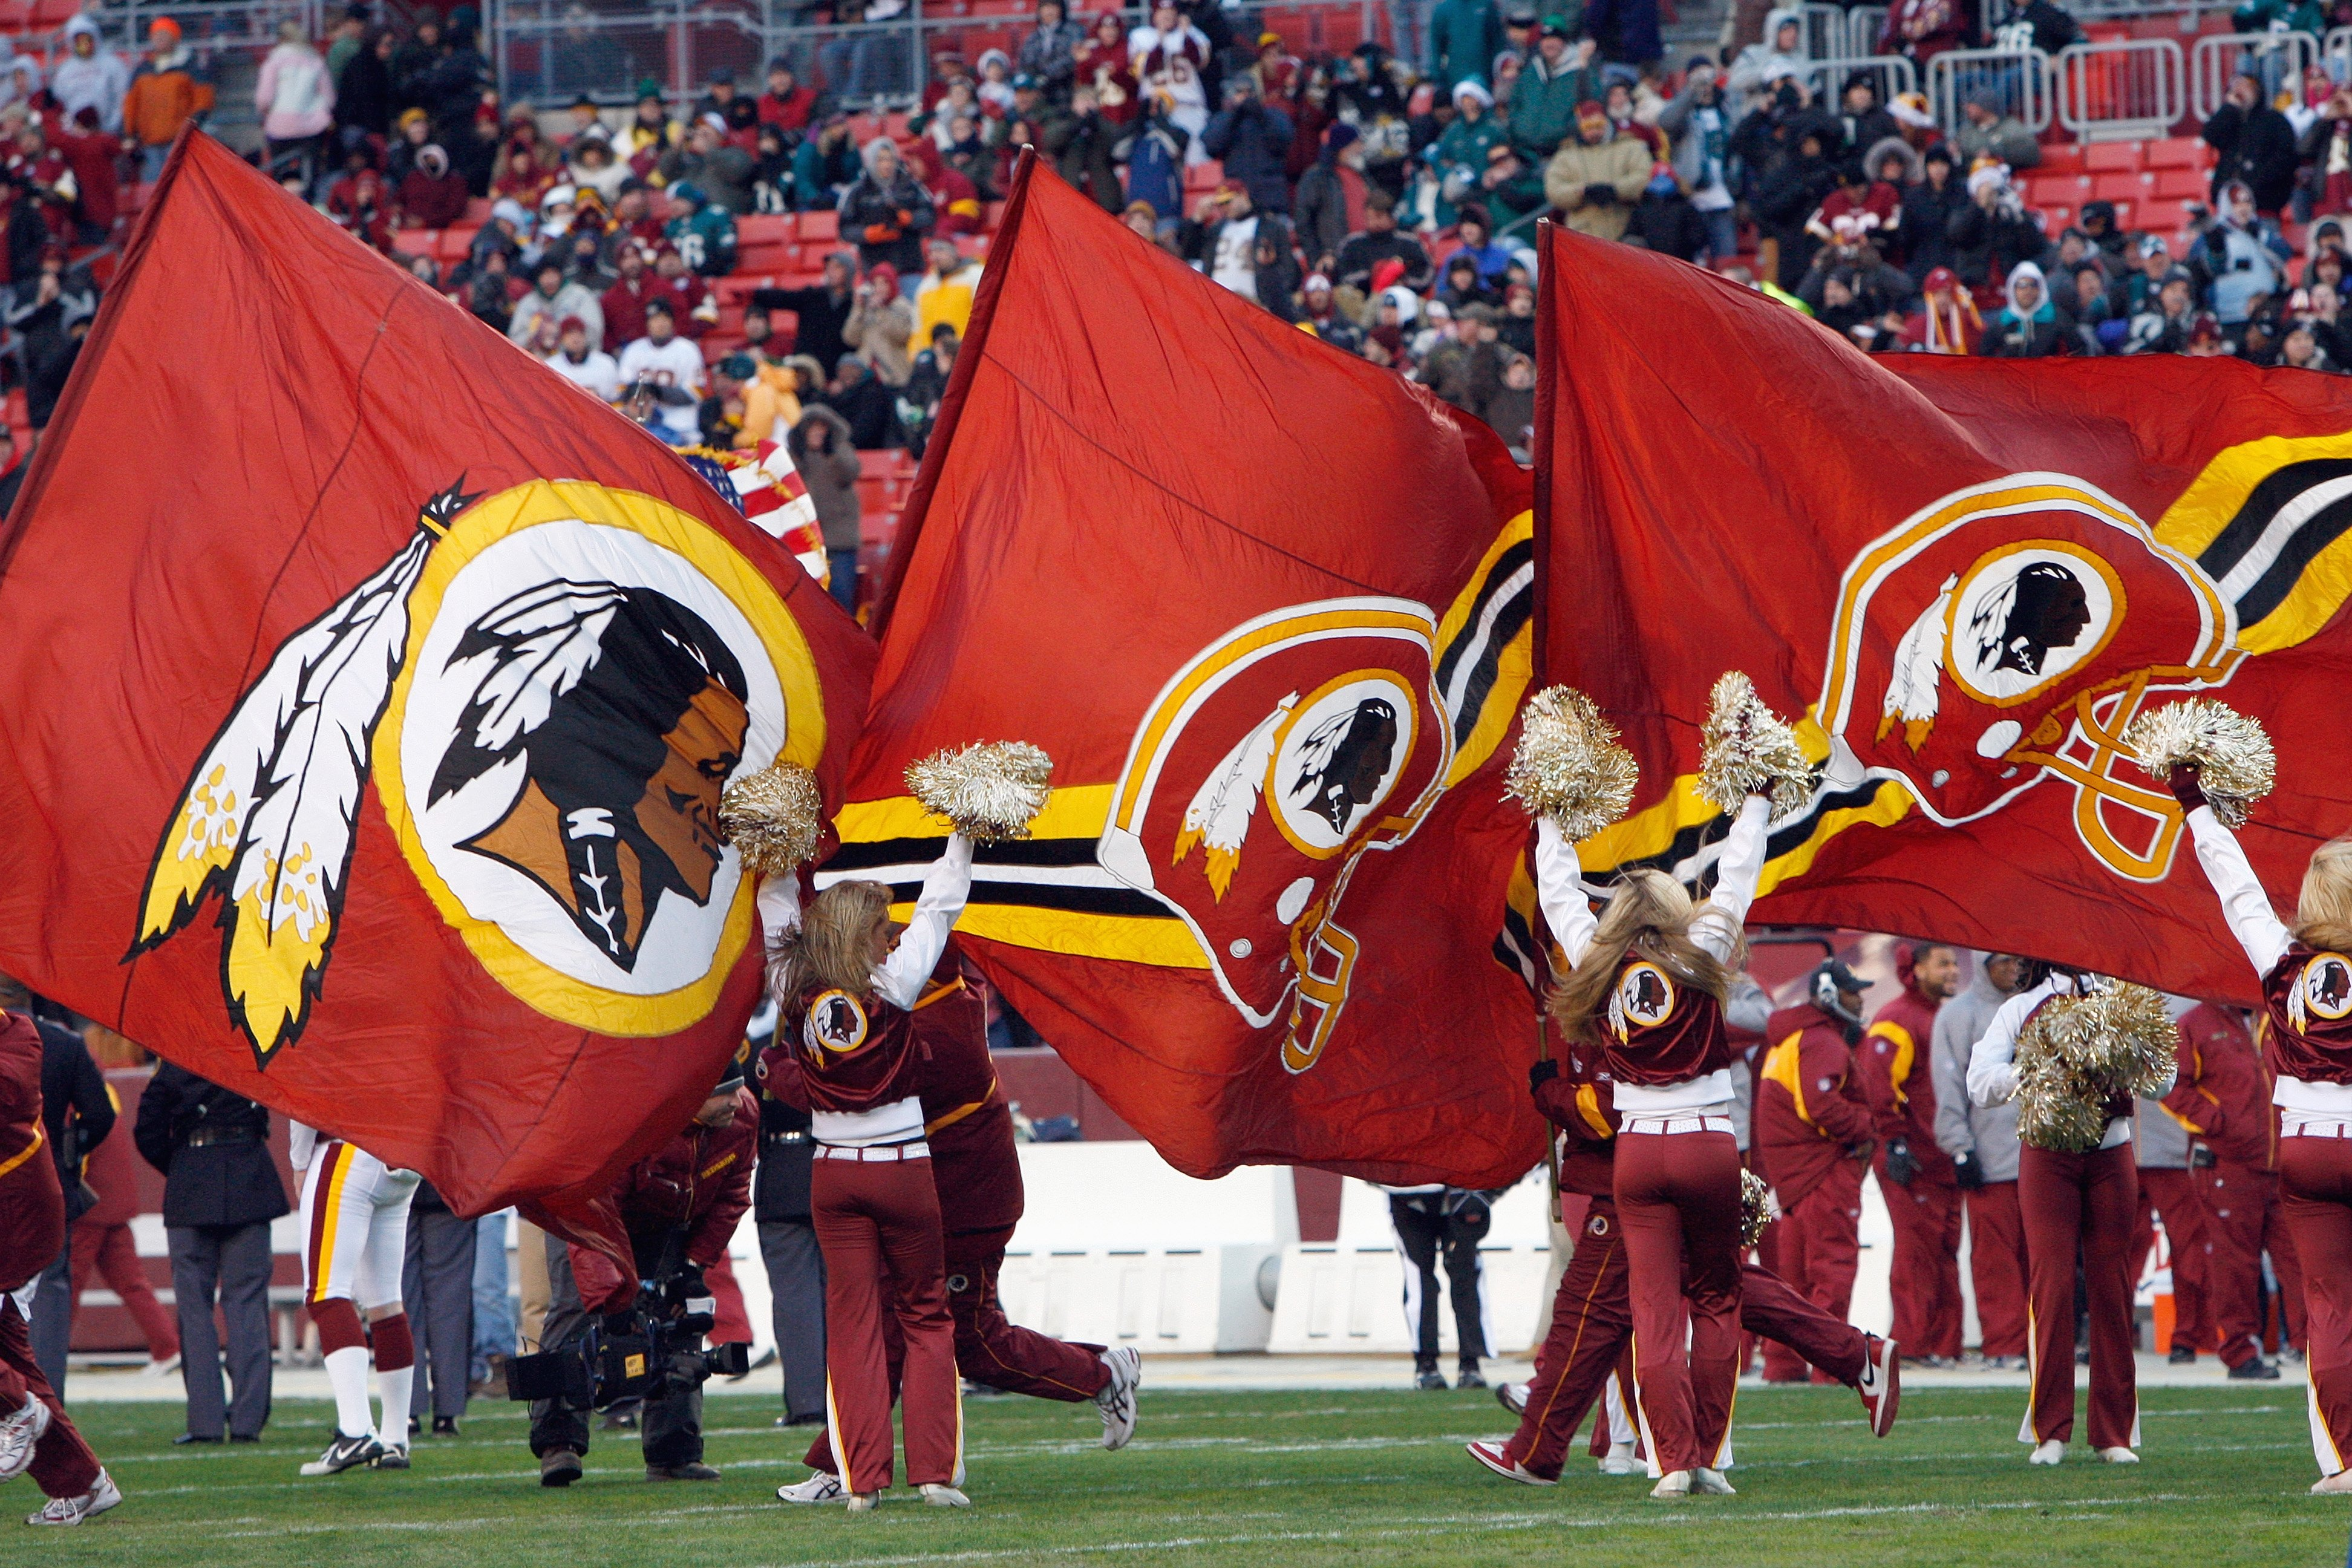 Taylor was one of the great Redskins from the 1960s.